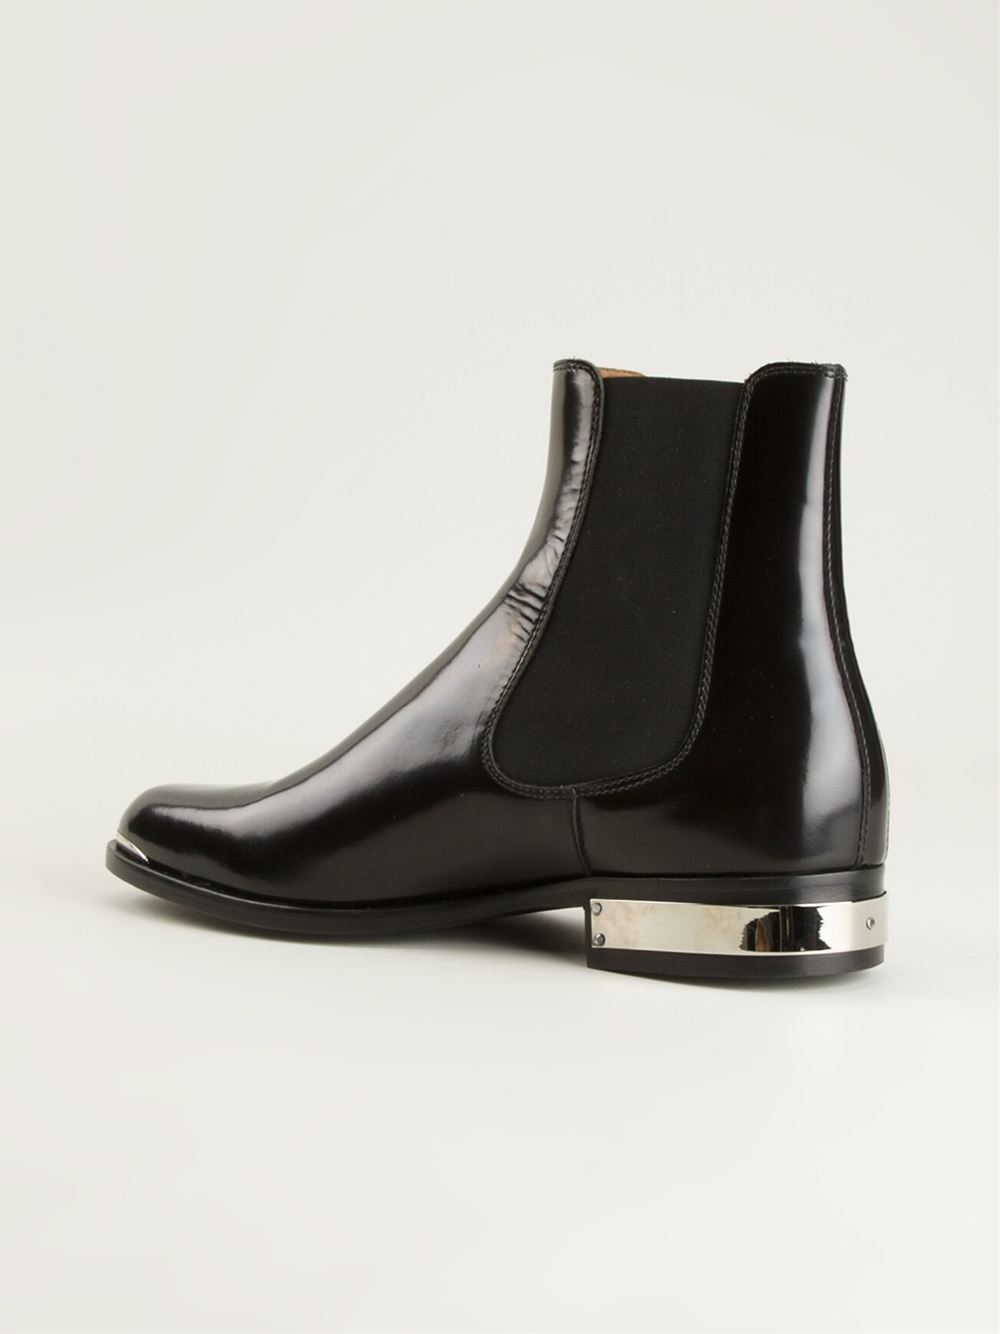 Lyst Diesel Black Gold Captain Pi Chelsea Boots In